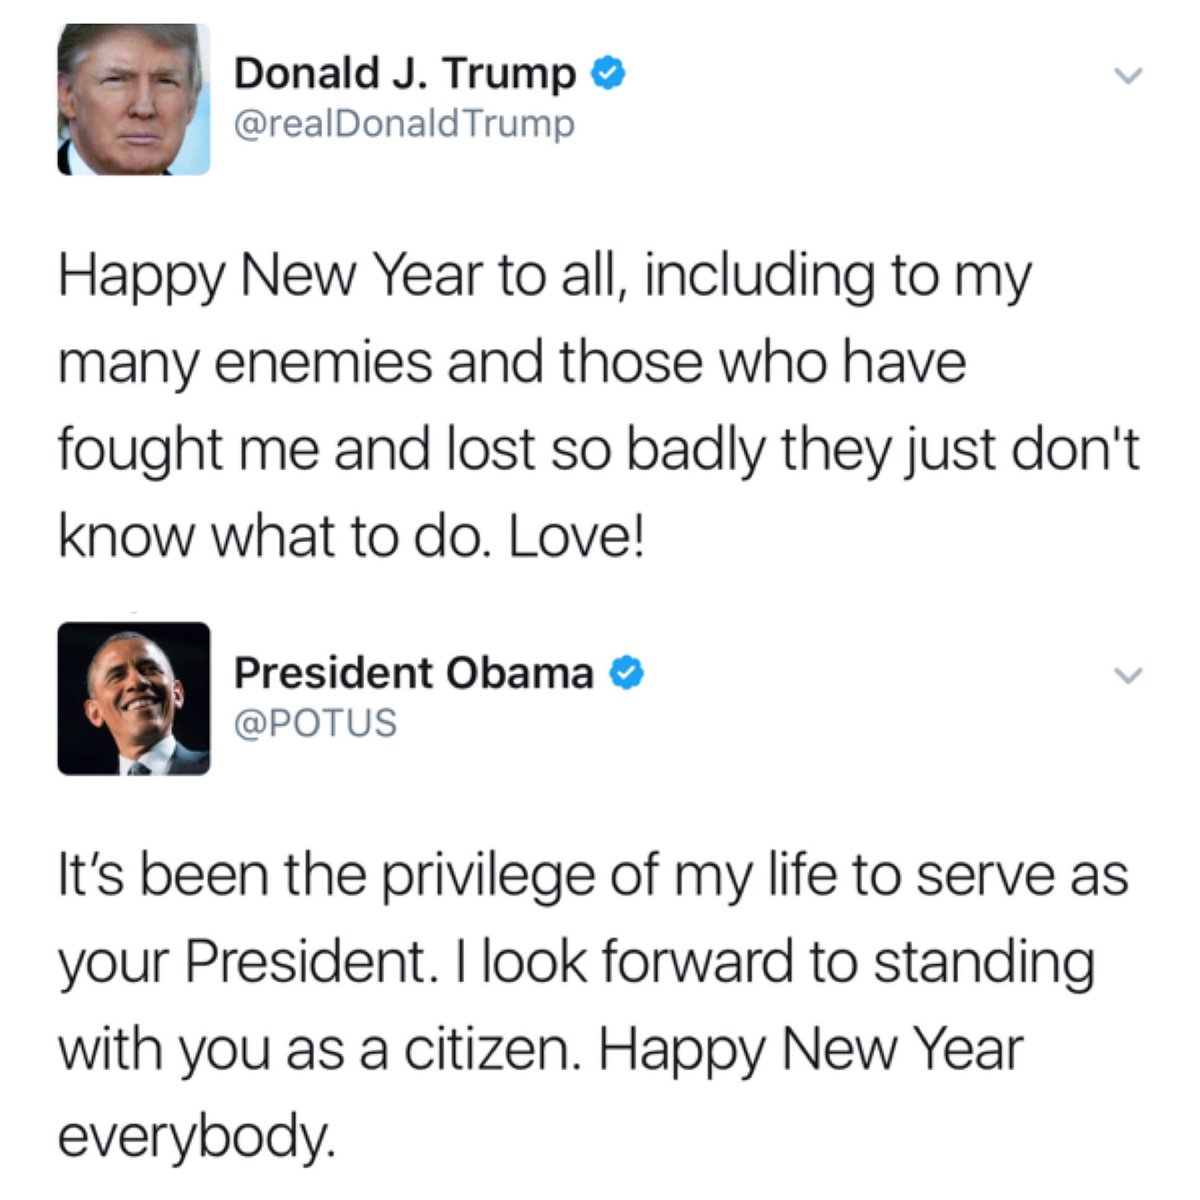 New Year wishes served two different ways. https://t.co/g9pW7TCm4o